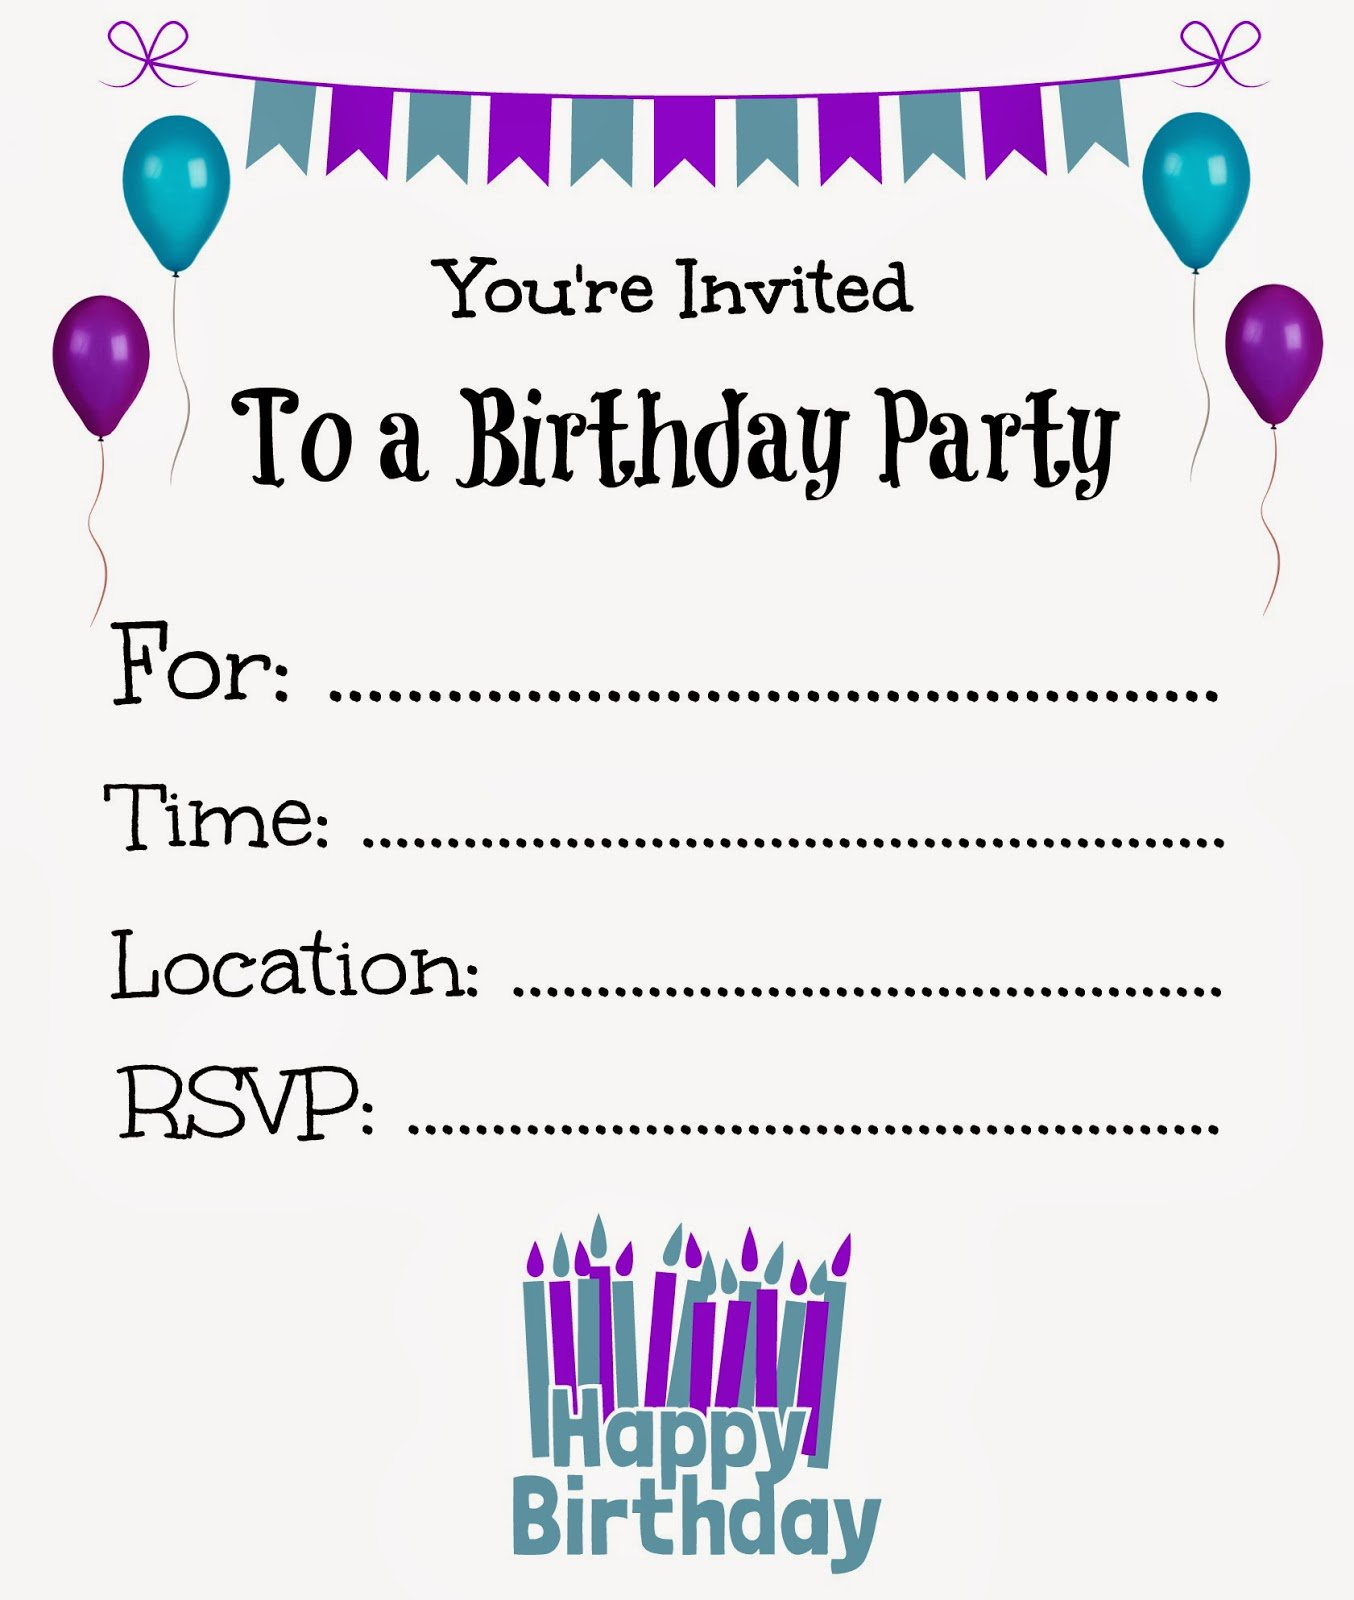 Free Printable Party Invites Templates Free Birthday Invitations - Make Your Own Birthday Party Invitations Free Printable